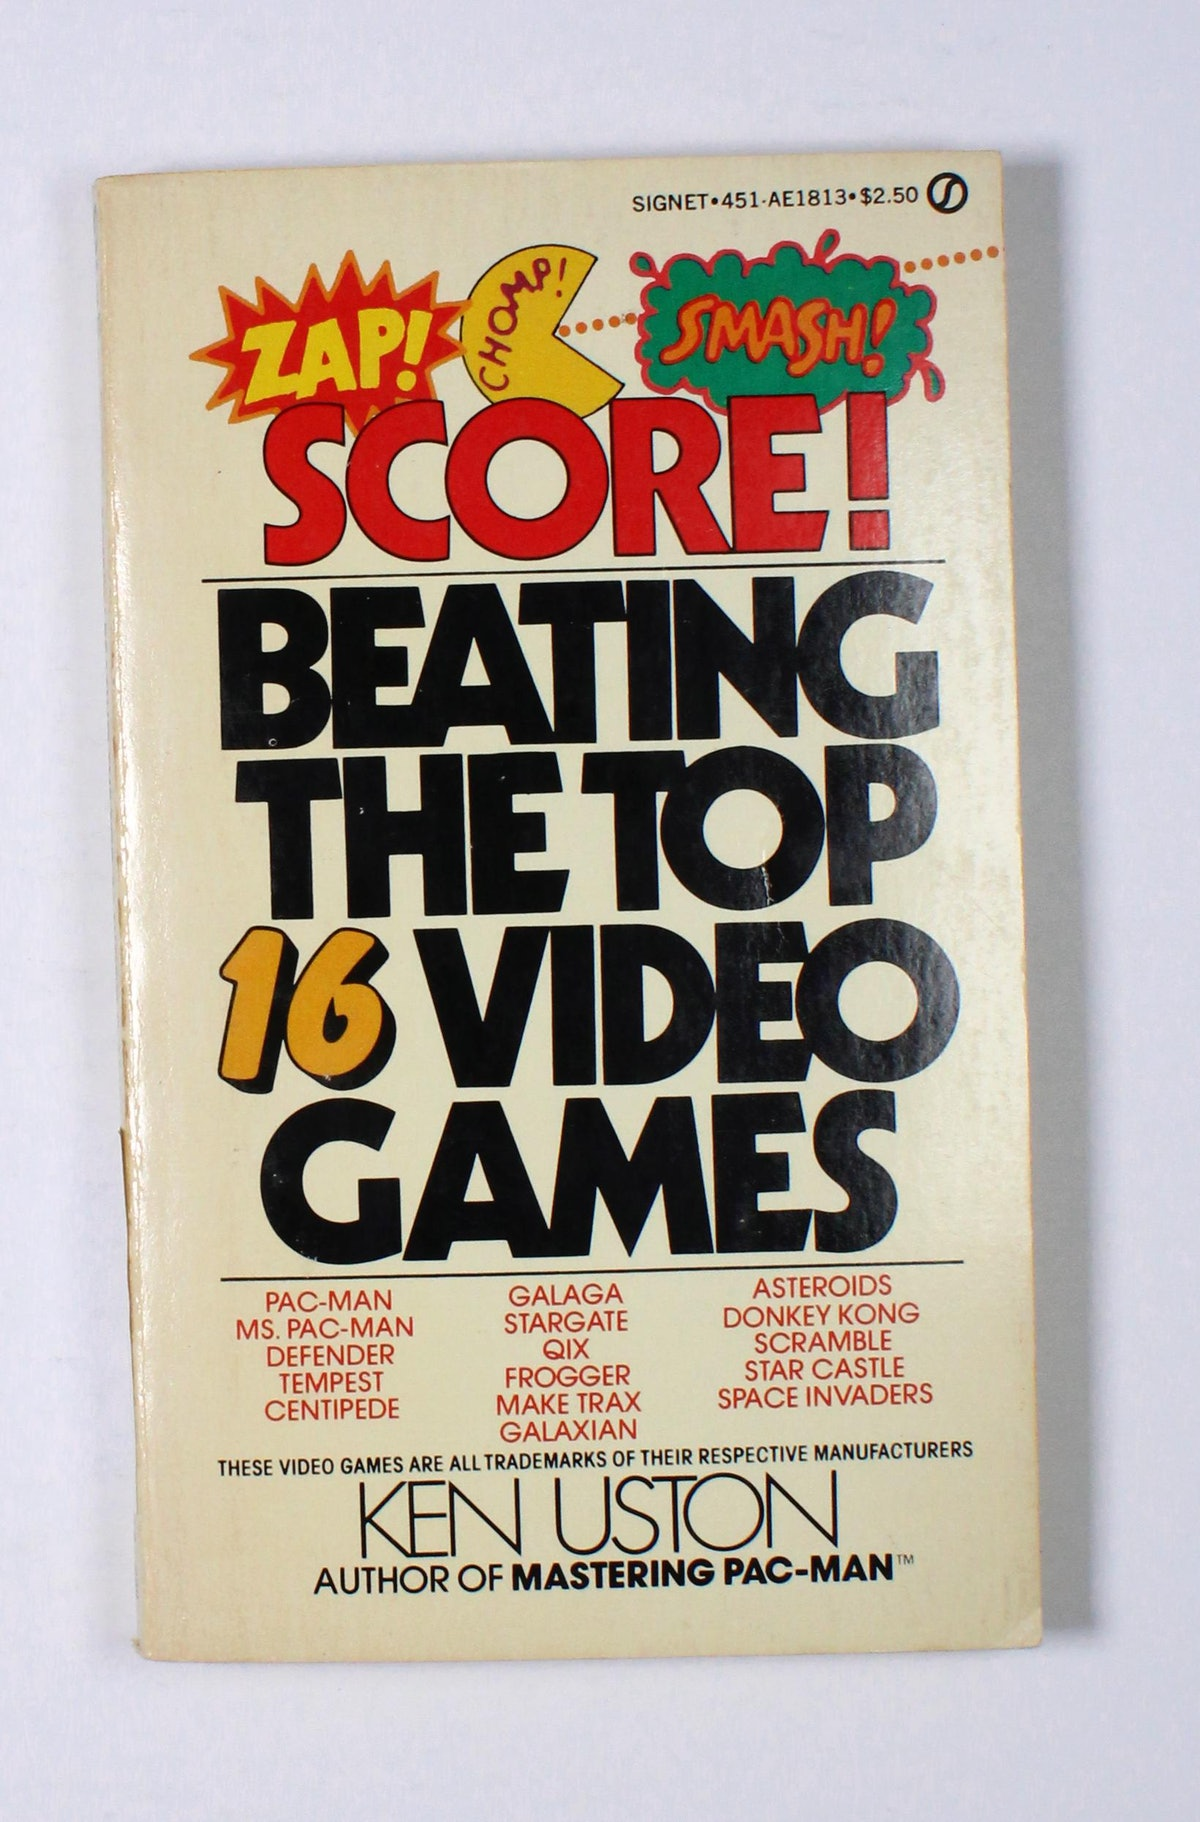 Score! Beating the Top 16 Video Games